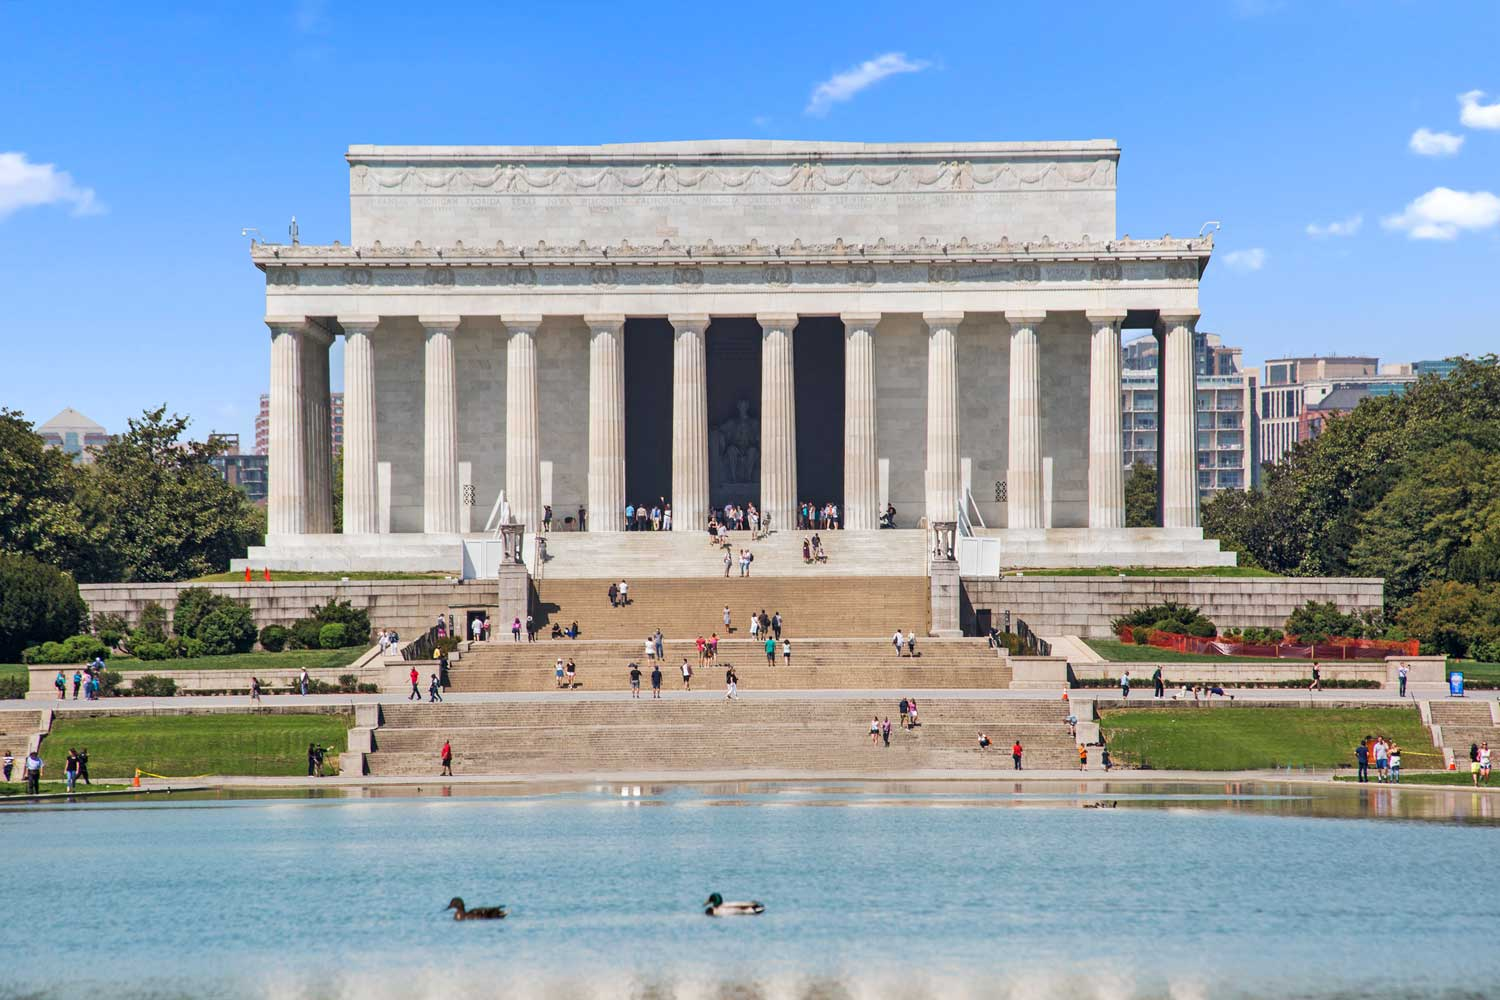 15 minutes to The Lincoln Memorial in Washington, D.C.